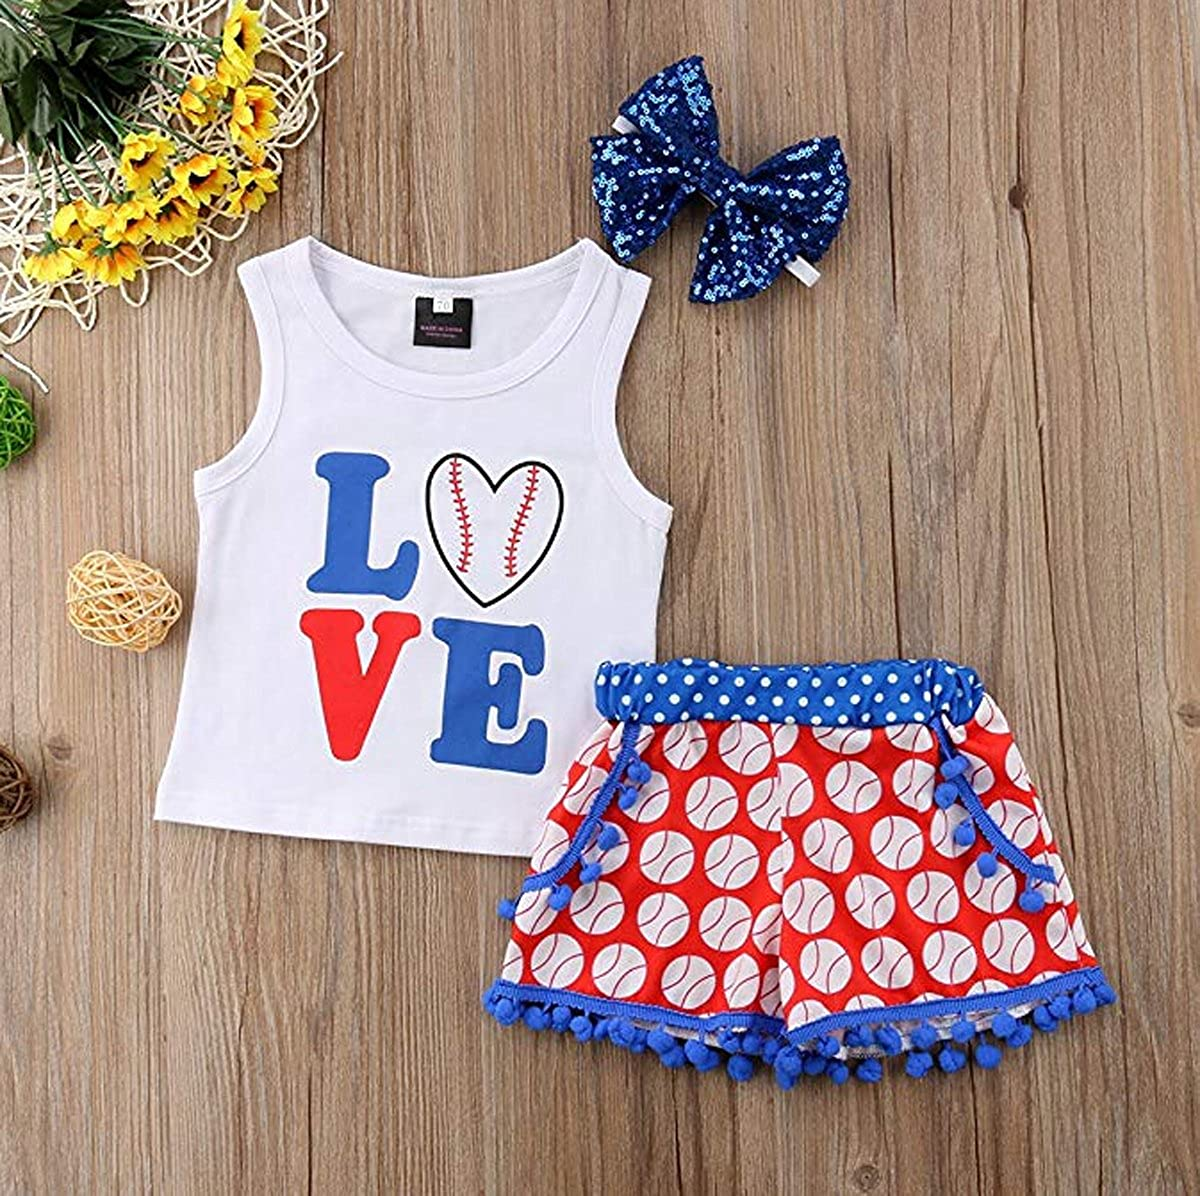 Newborn Baby Girls 3 Pcs Outfits 4th of July Letter Vest Top and Baseball Pompom Shorts Pants Set with Headband